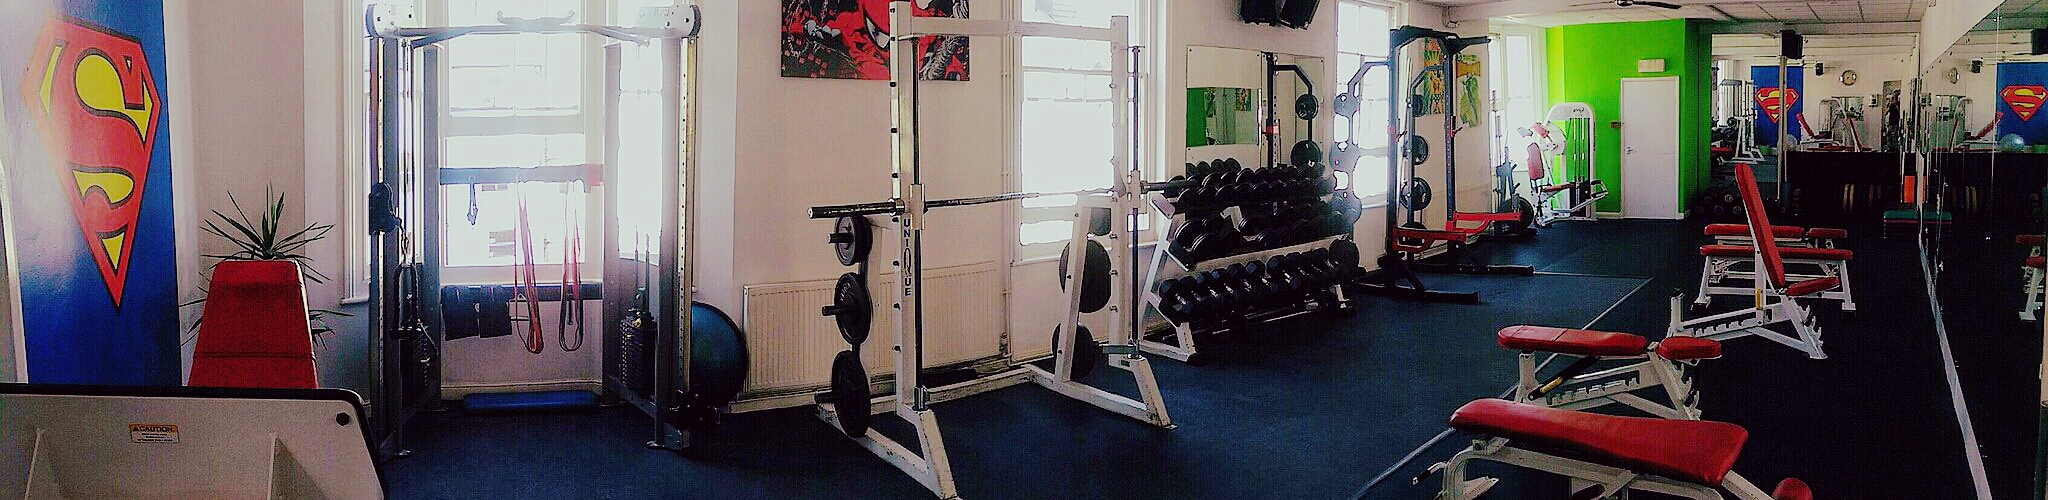 1st Floor, Back Room – Free Weights and Resistance Machines